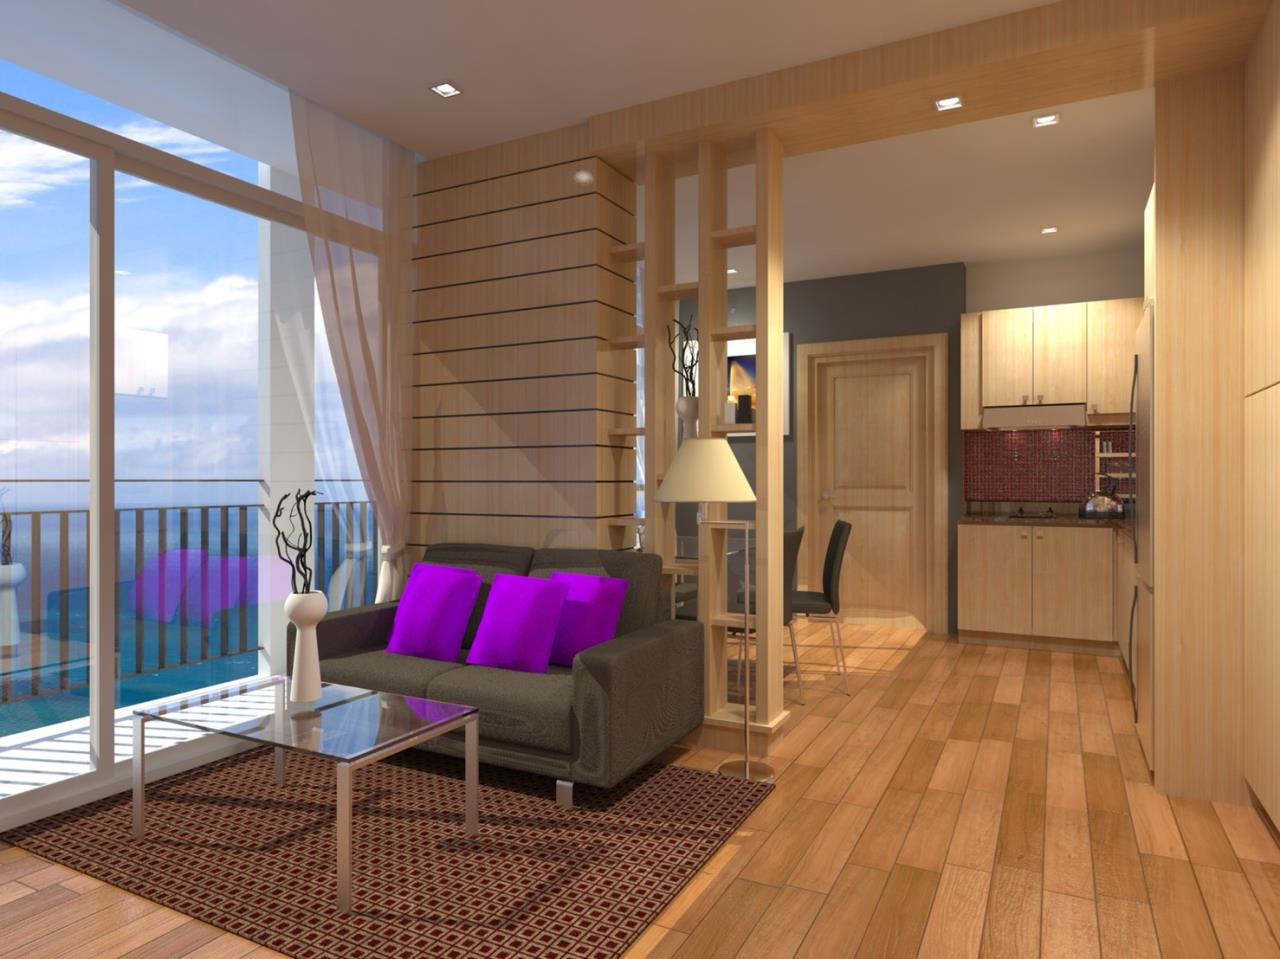 Signature Realty ( Thailand ) Co Ltd Agency's Furnished 1bedroom 44 sq.m condo with jacuzzi floor 21-31 at The Grand Jomtein Beach Pattaya 8